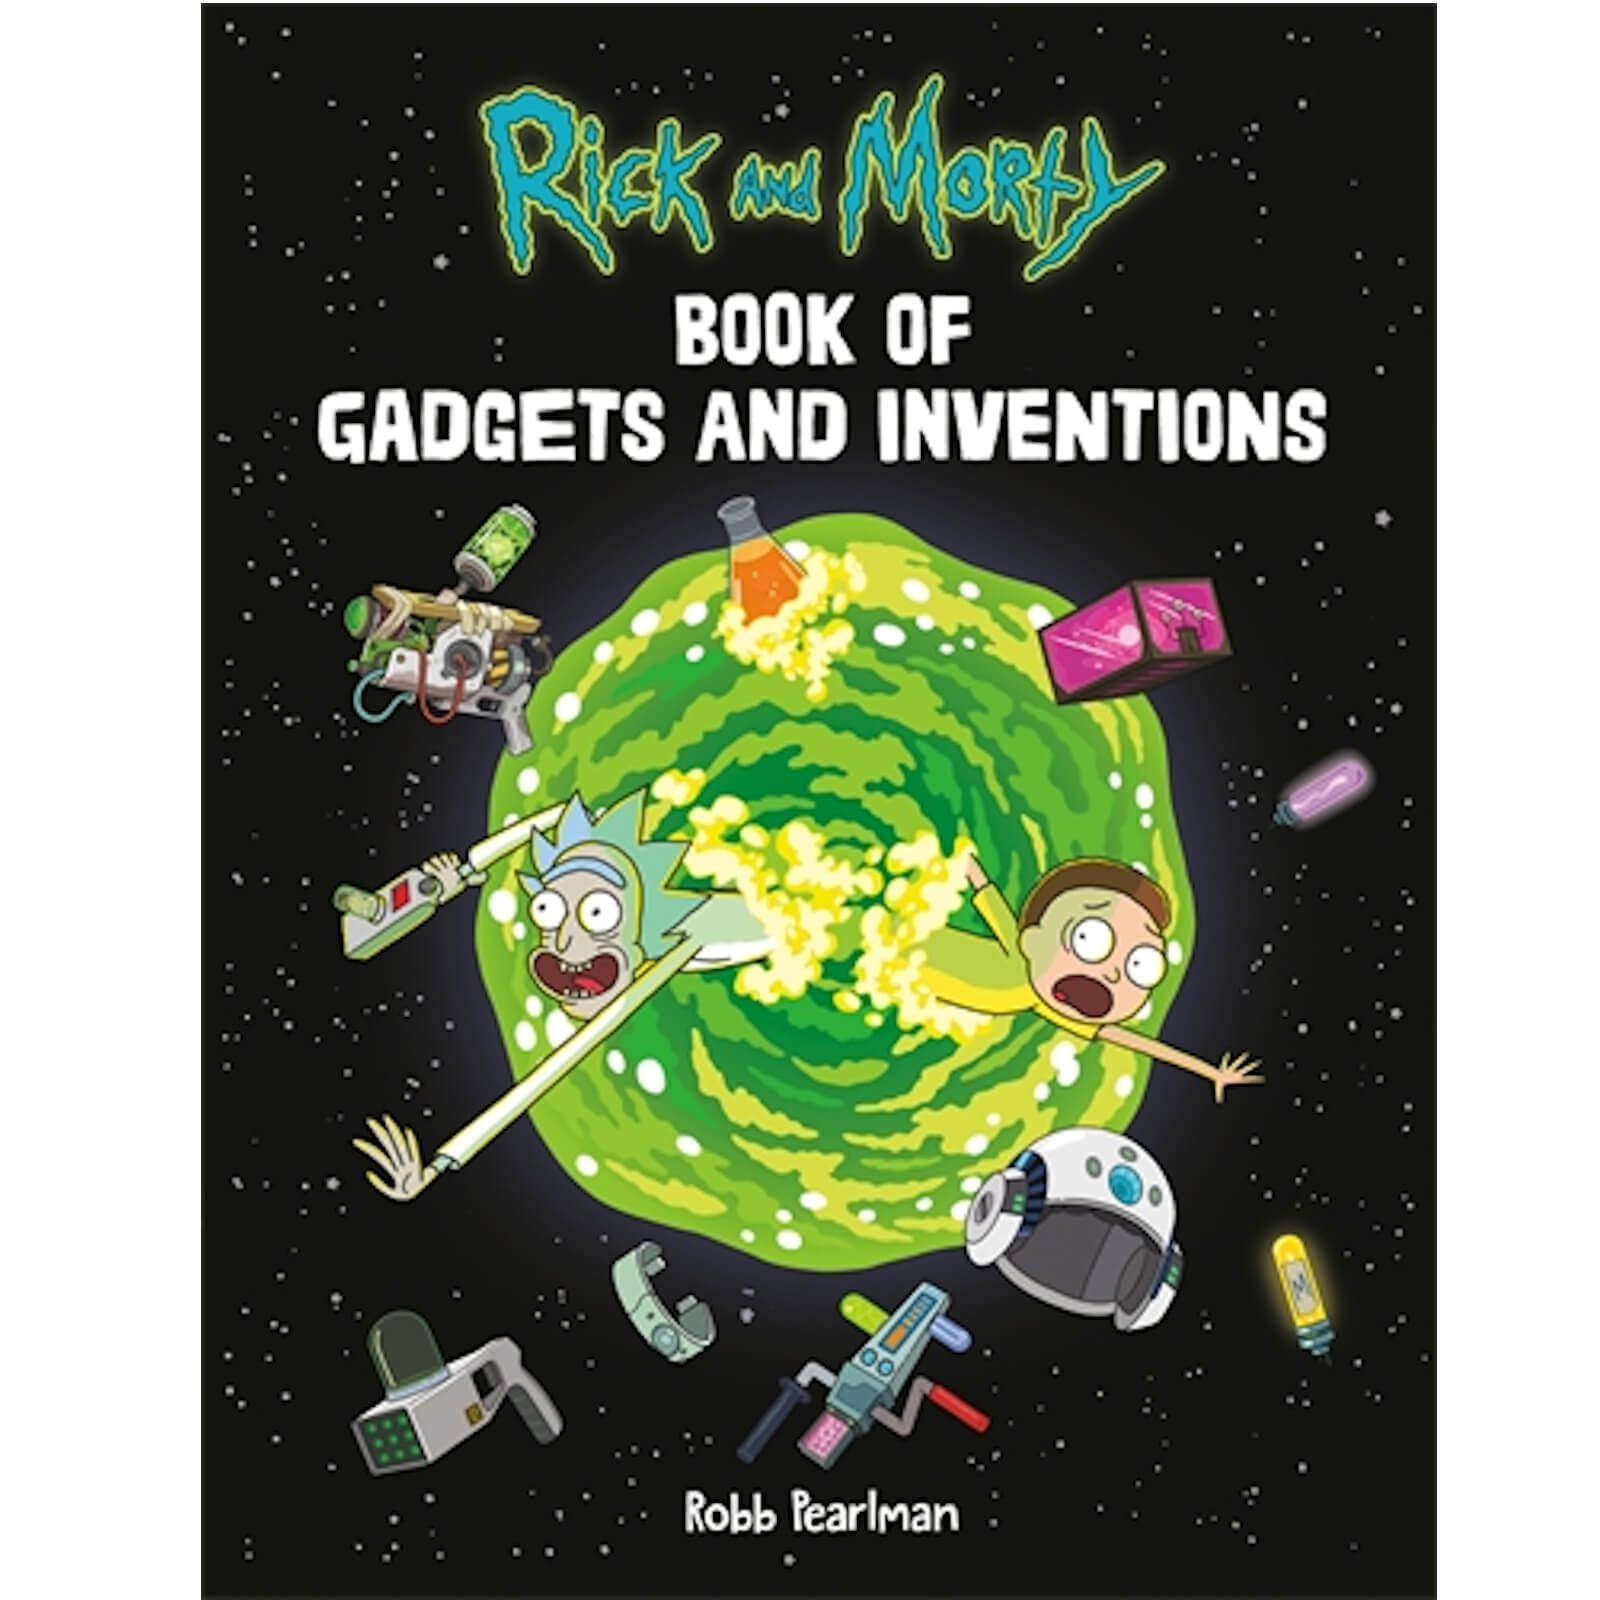 Image of Rick and Morty: Book of Gadgets and Inventions